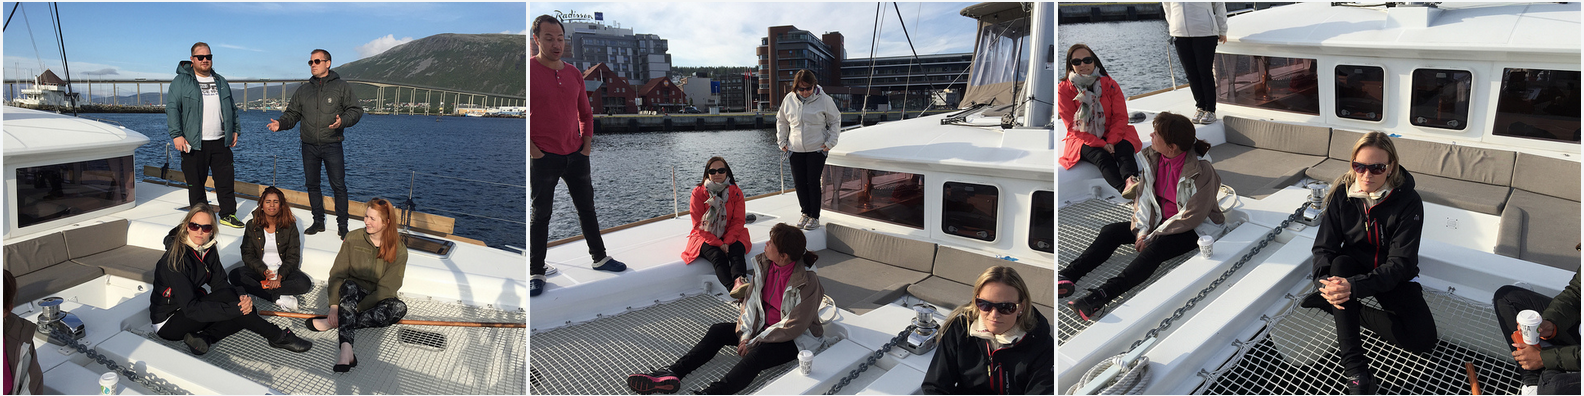 Sailing and relax trip | Tromsoe | Scandic